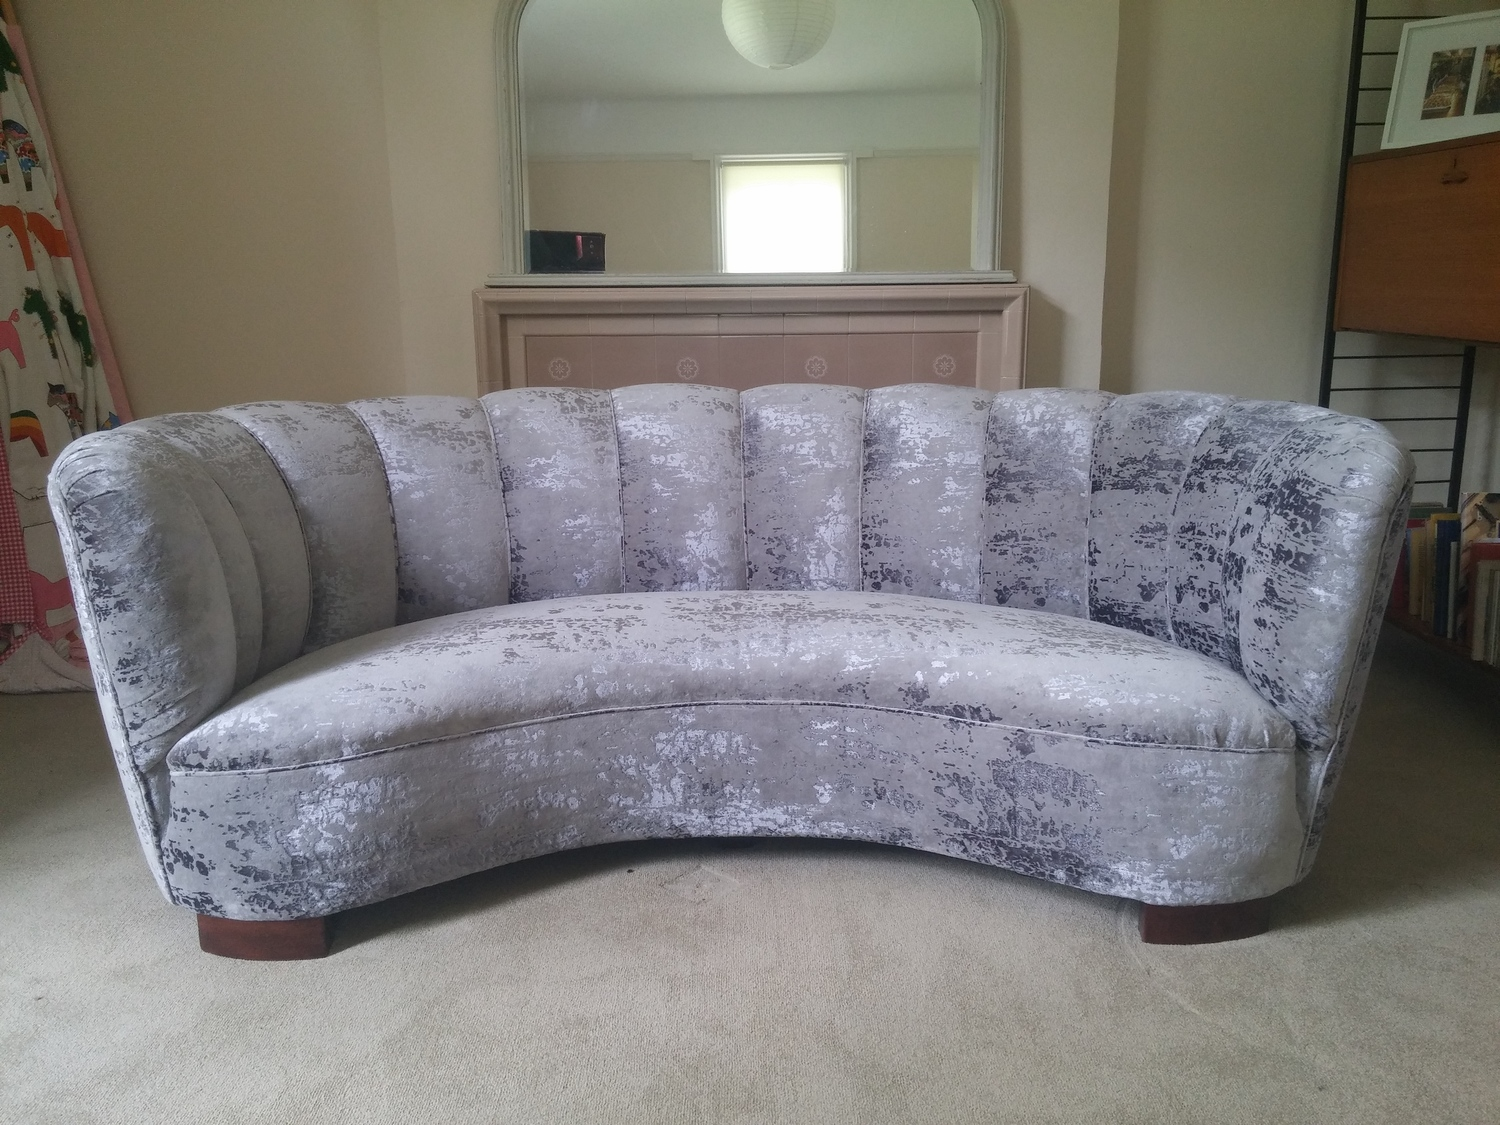 Saggy Couch | Restuffing Couch Cushions | Couch Stuffing Material